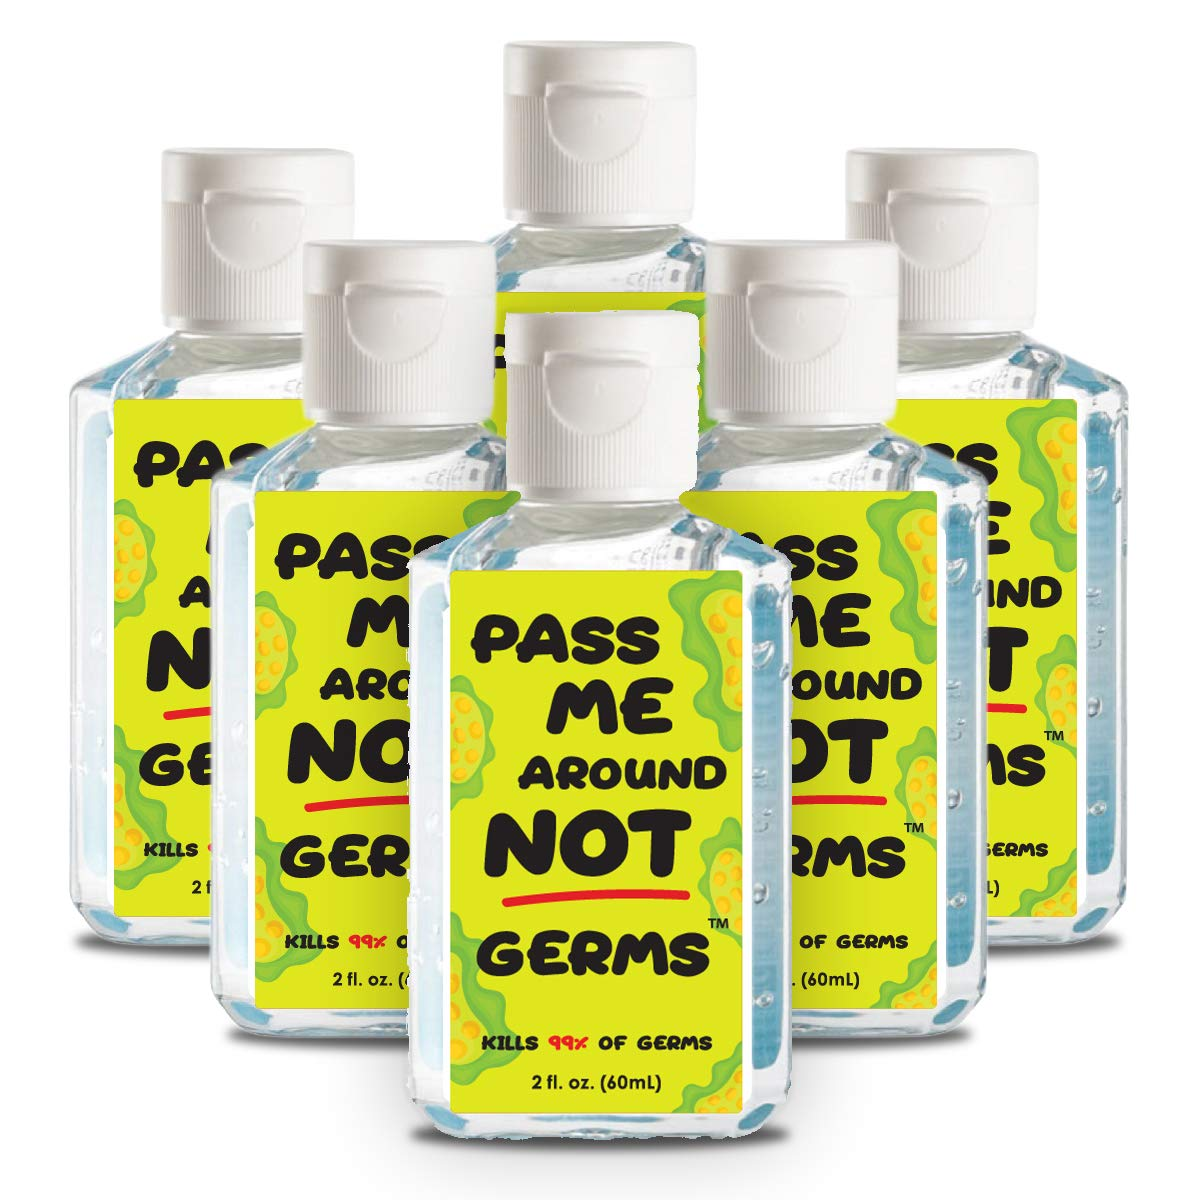 Essentially Yours Hand Sanitizers for Daily Use 70% Alcohol, Pass Me Around Not Germs, 2 Fl Oz, 6 Pack